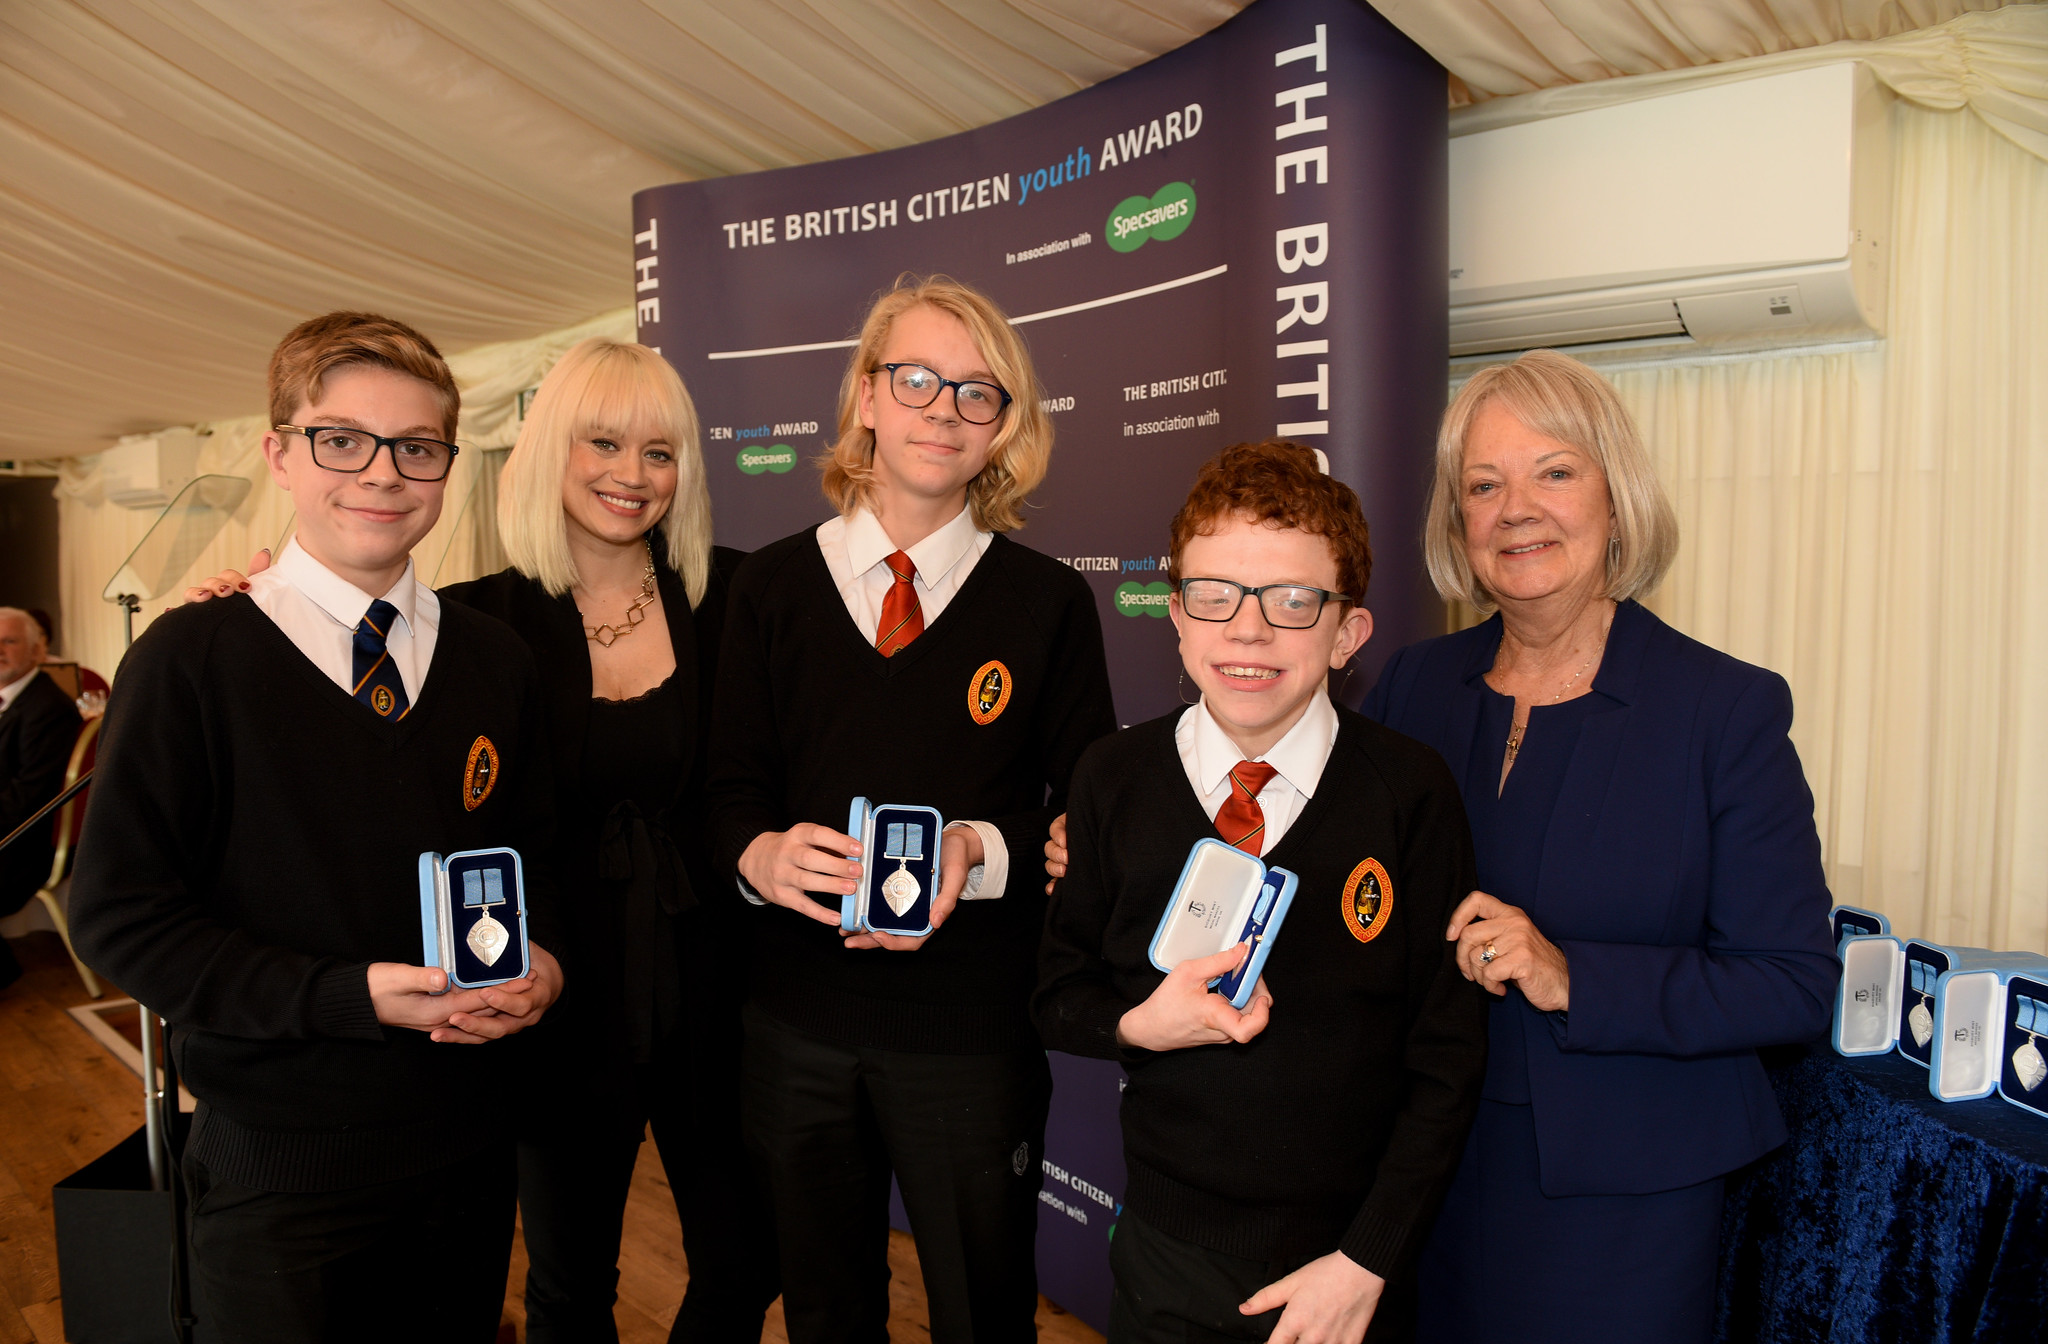 James Lunn BCyA, Kimberly Wyatt, Andrew Lunn BCyA, Marcus Weston BCyA, Dame Mary Perkins, Co-Founder, Specsavers